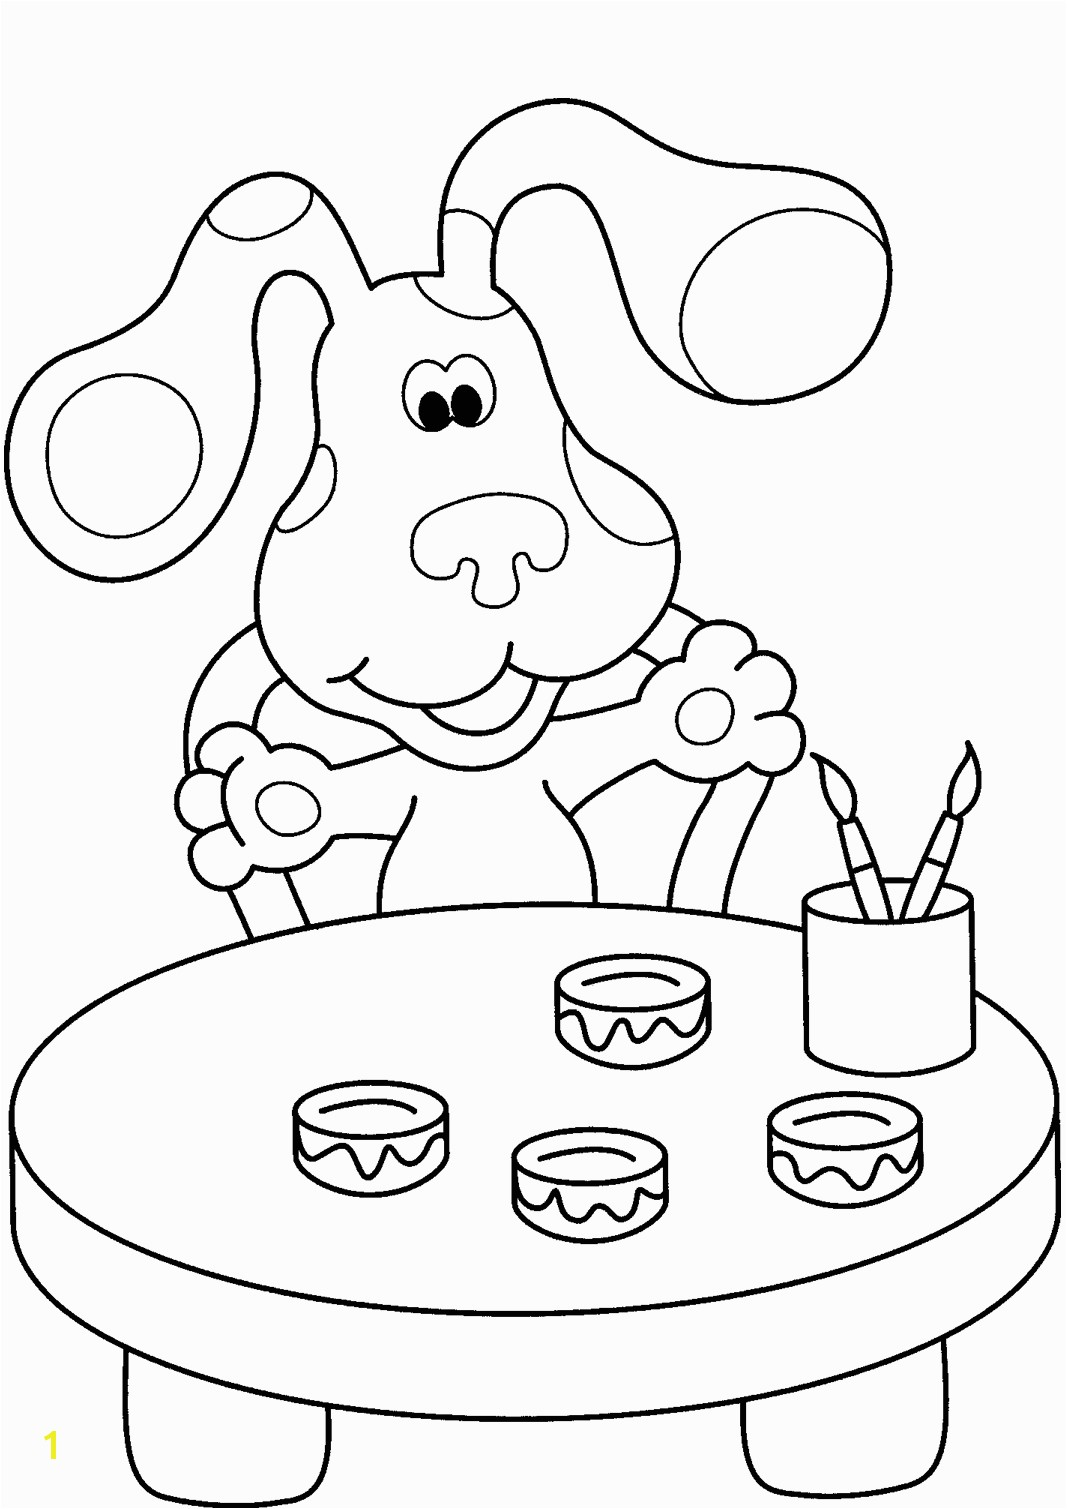 Nick Jr Blue39s Clues Coloring Pages Within Blues Clues Coloring Pages